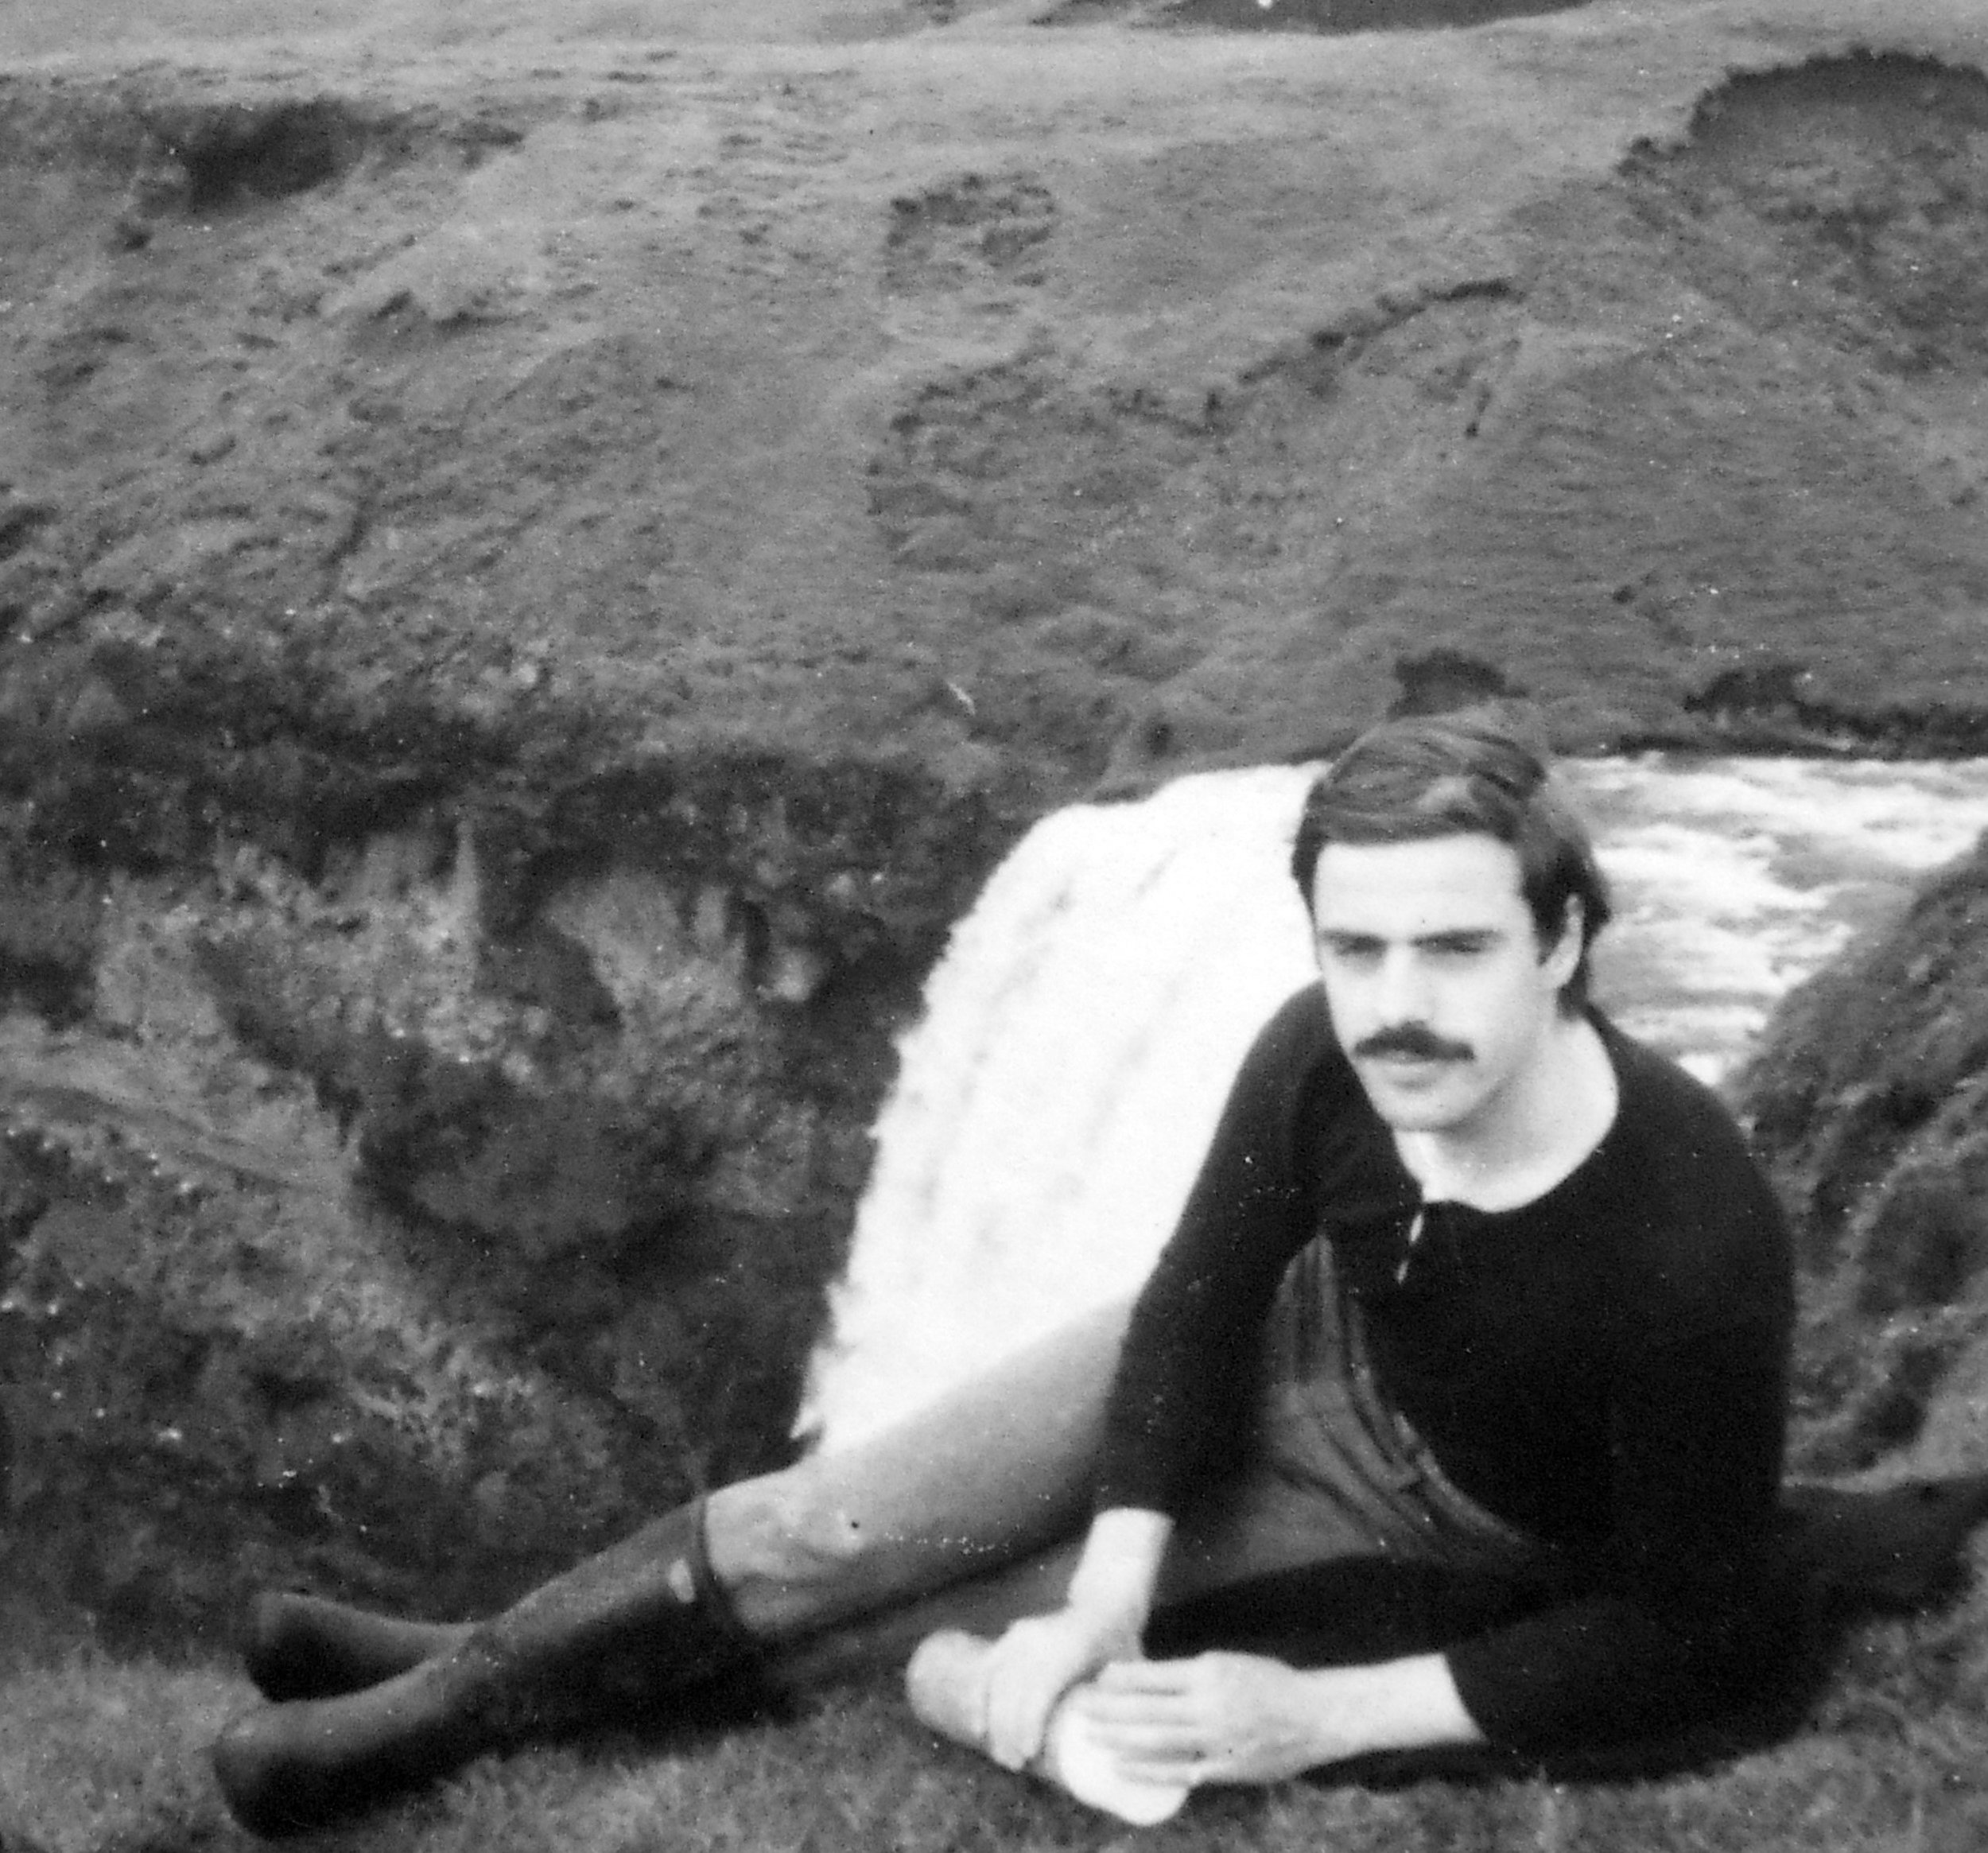 The author at Skógafoss, Sept 1969